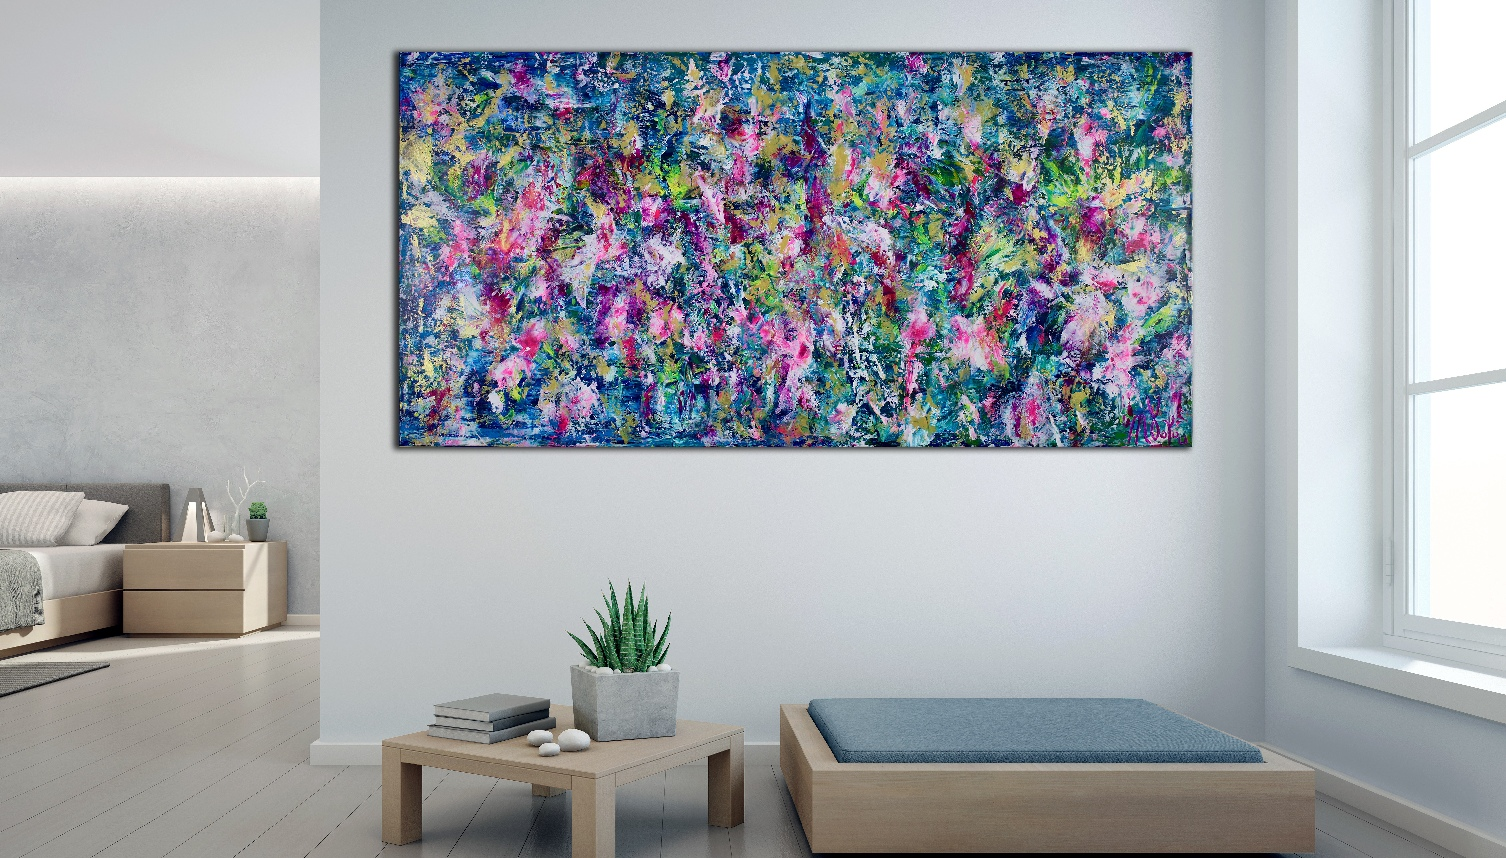 Room View - A Closer Look (Consequences of Nature) by Nestor Toro Los Angeles 2019